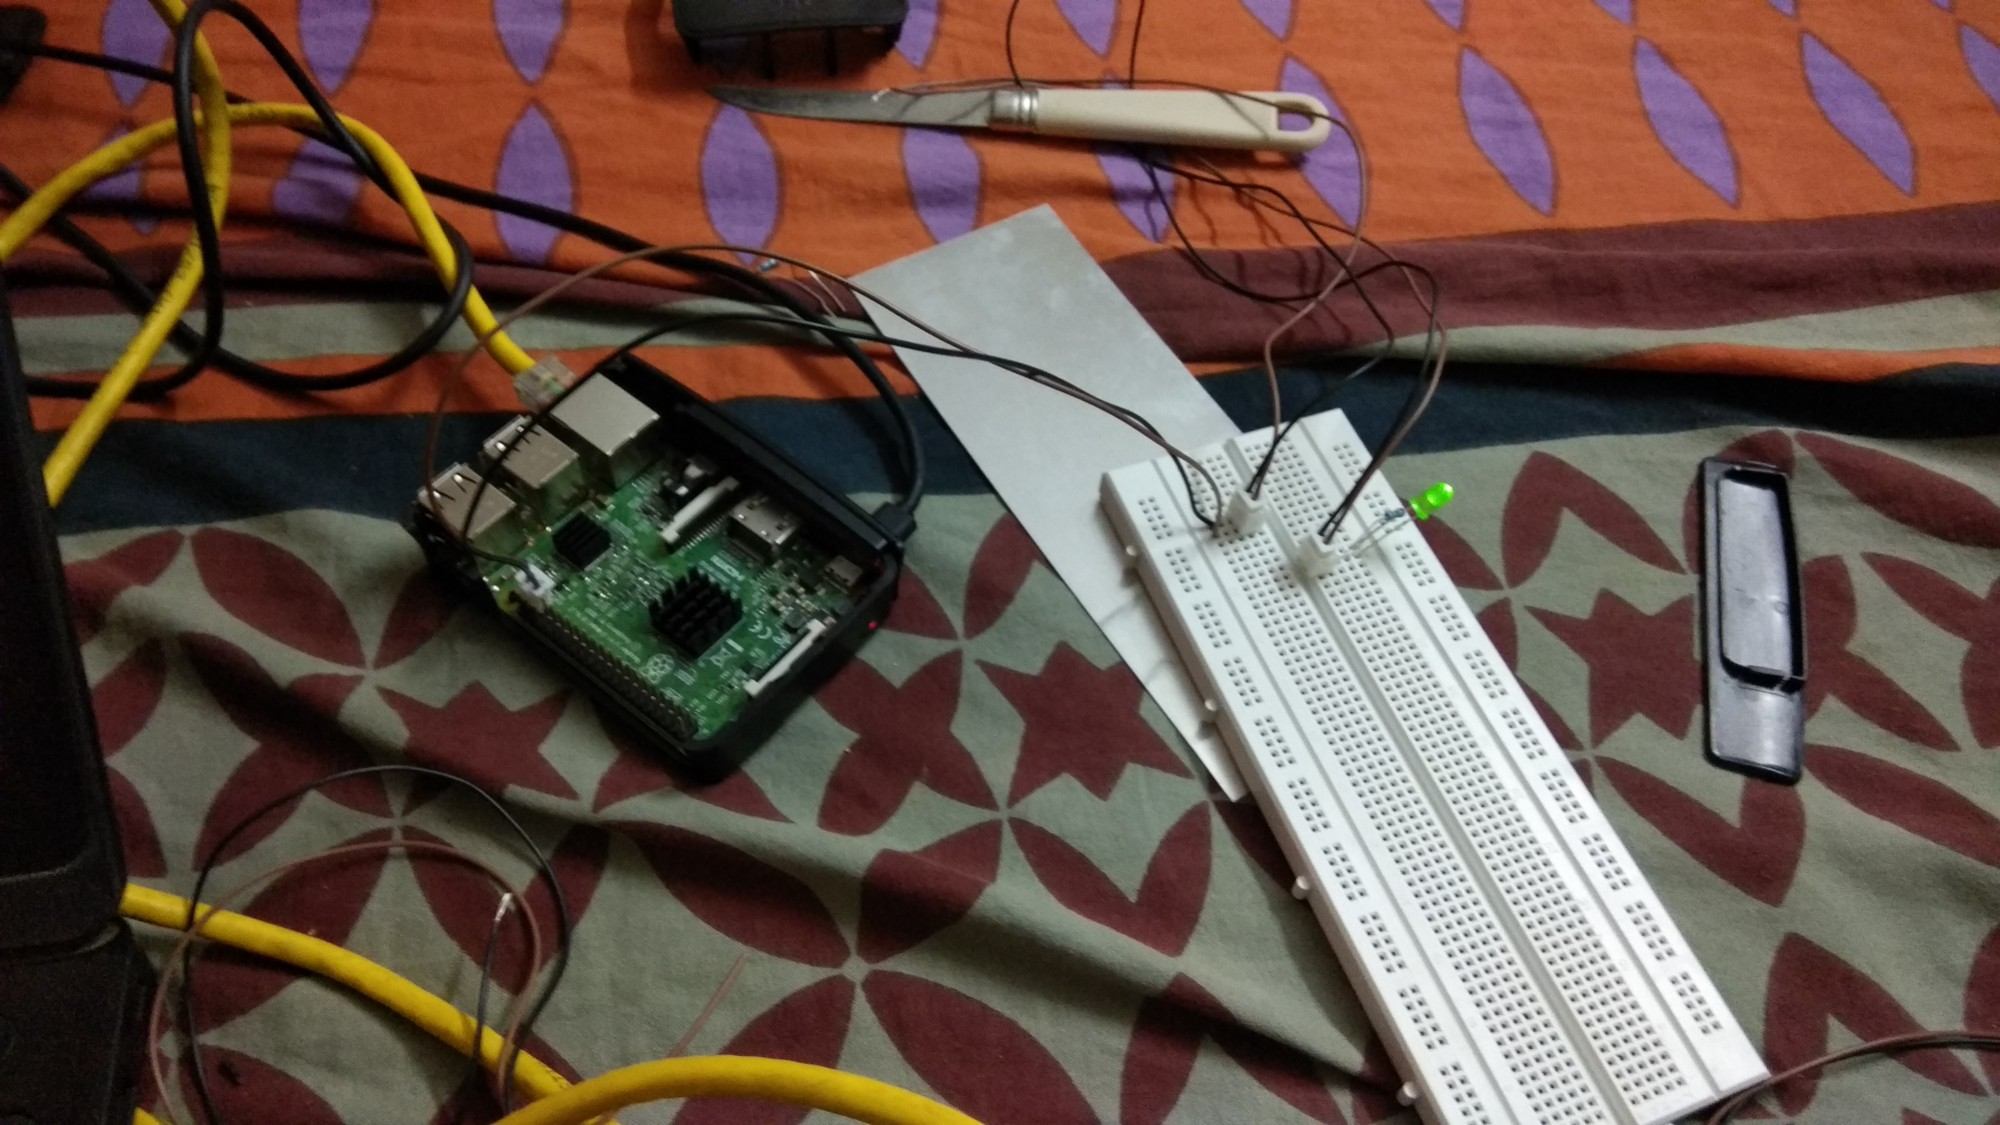 Remote Control Raspberrypi Leds From Web Browser Ui Led Light Circuit Diagram